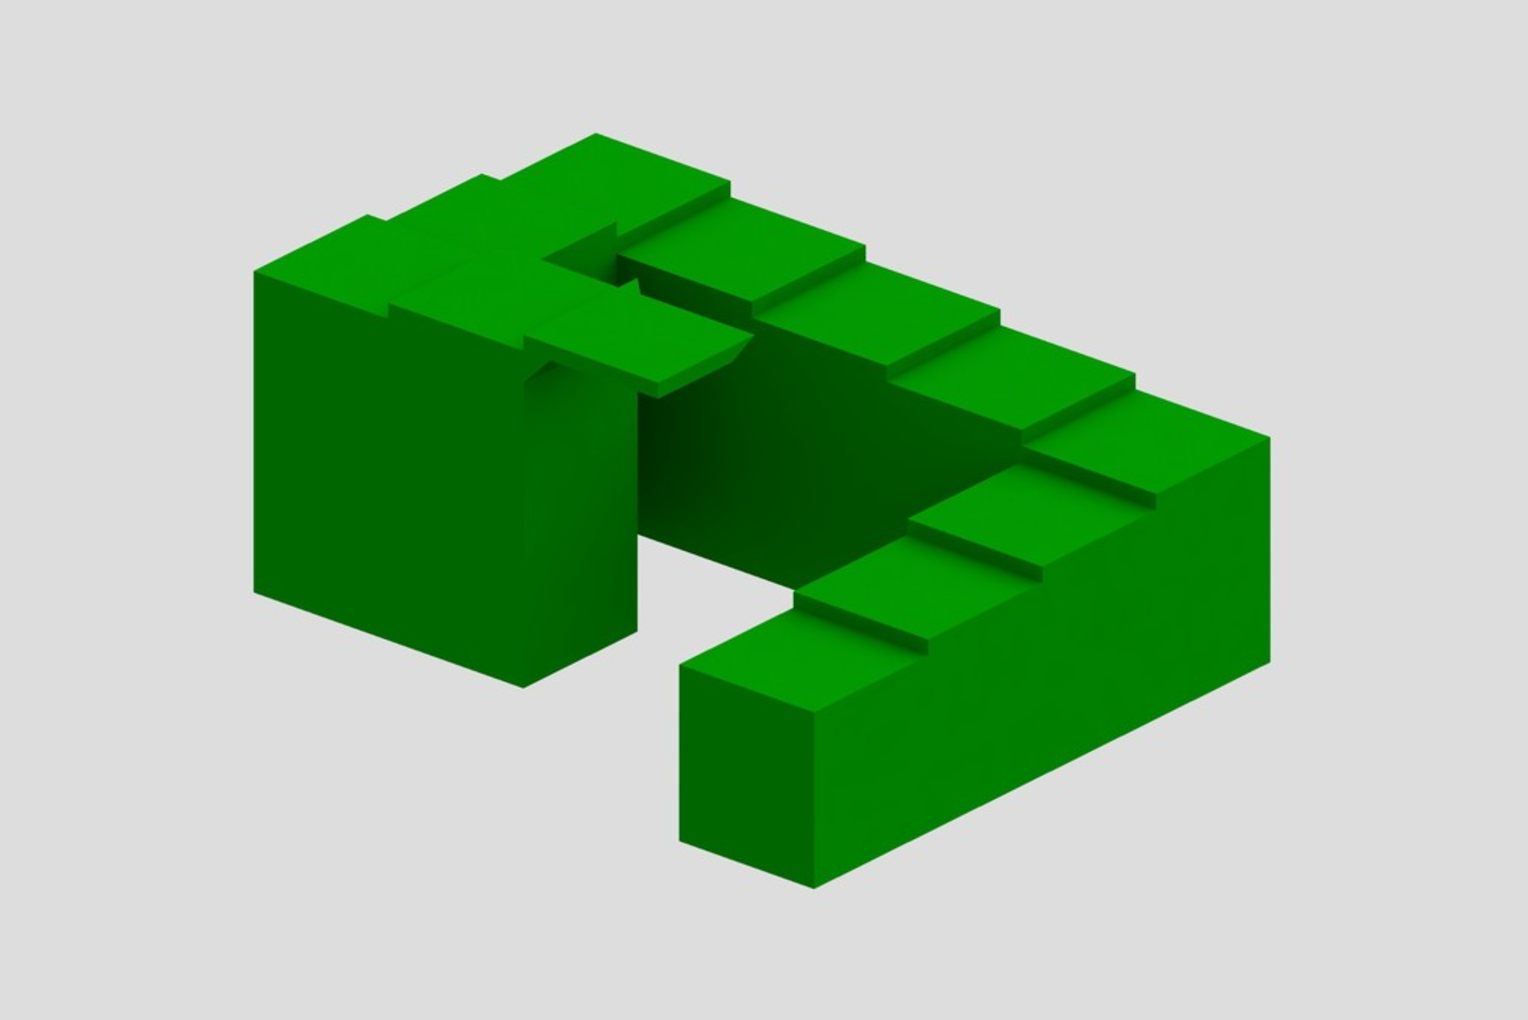 Capture d'écran 2017-04-12 à 14.51.29.png Download free STL file Impossible Stairs • 3D printing object, Chrisibub